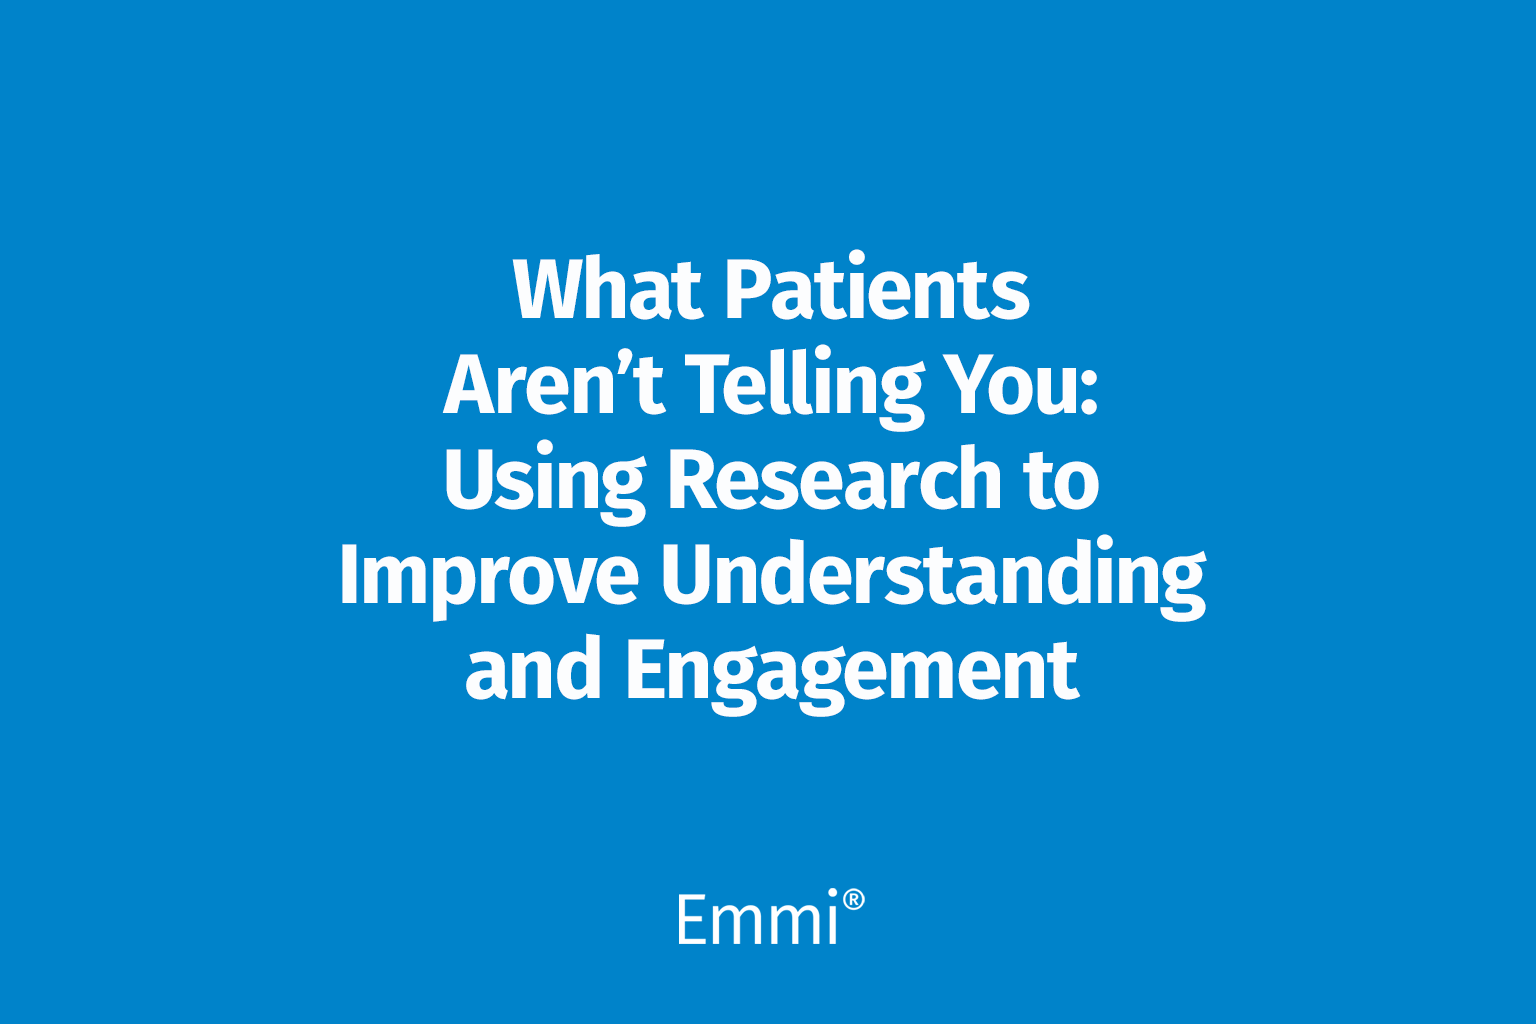 What patients aren't telling you: Using research to improve engagement